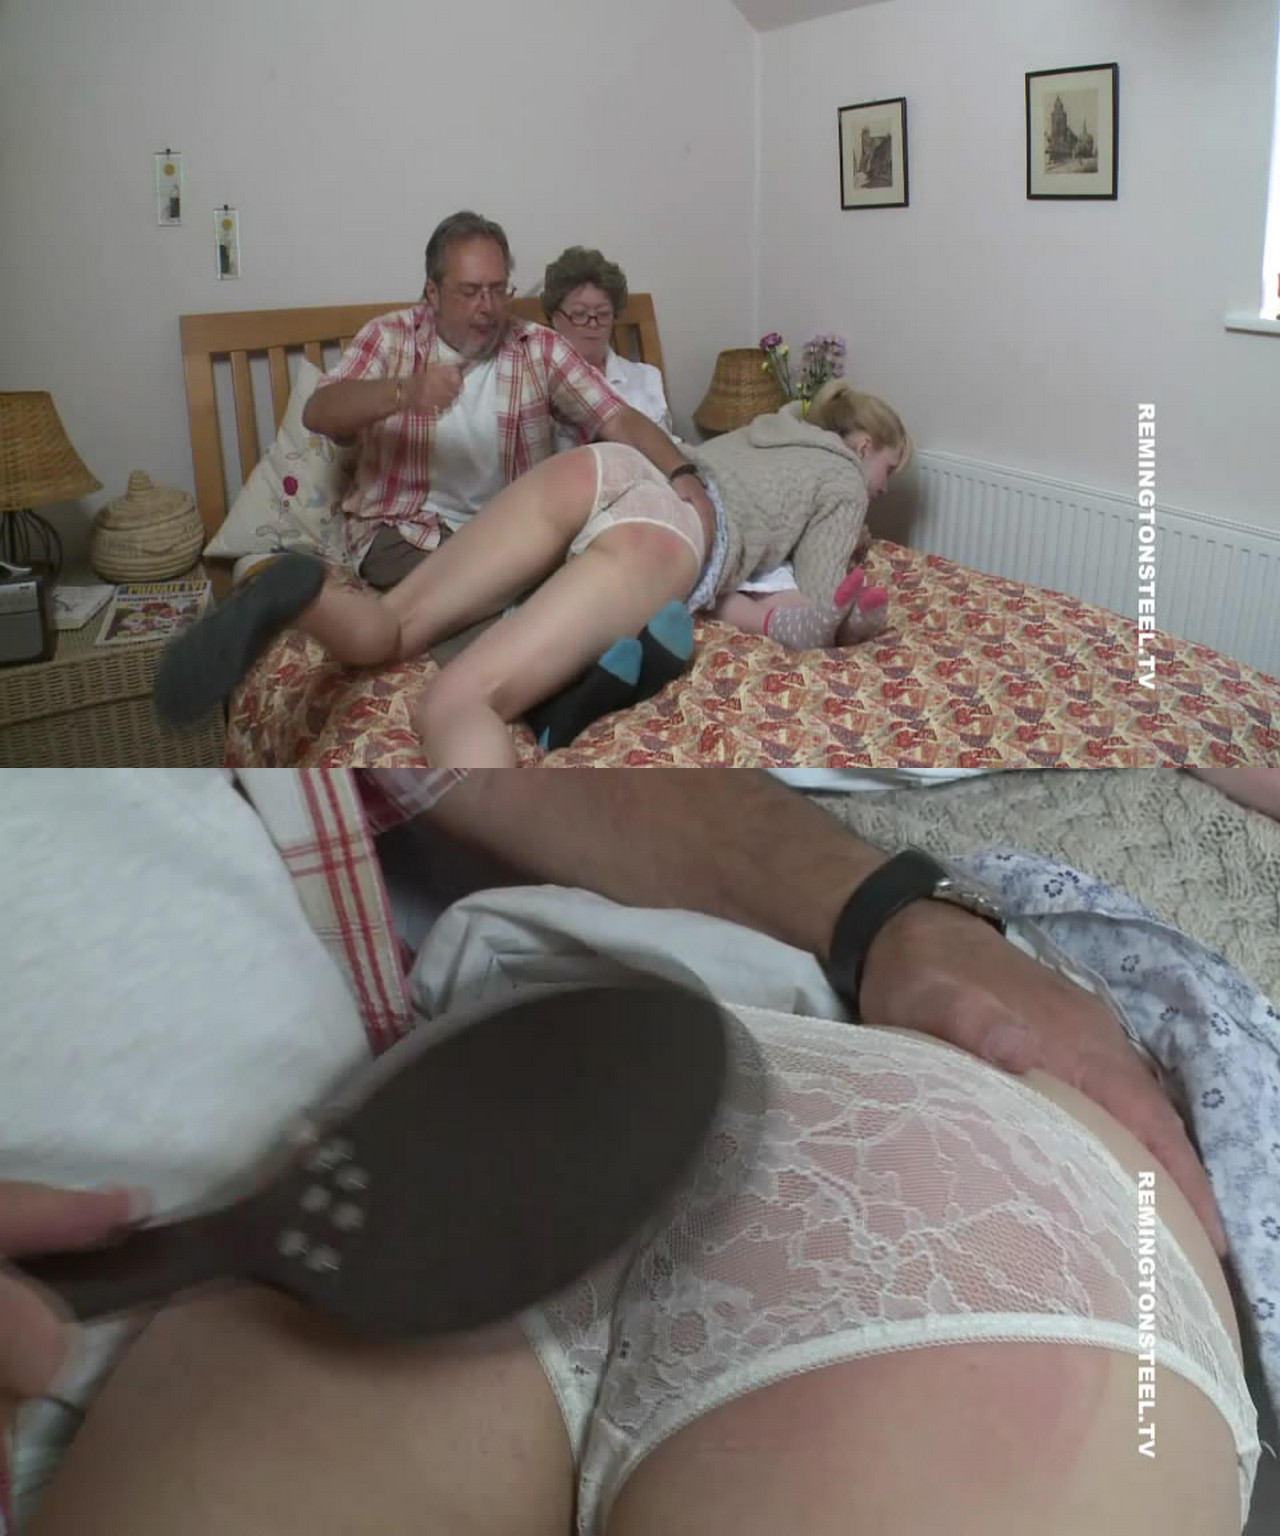 English Spankers – MP4/SD – Amelia Jane Rutherford, Katie Didit, Mr Stern – Redriding hood Part 2